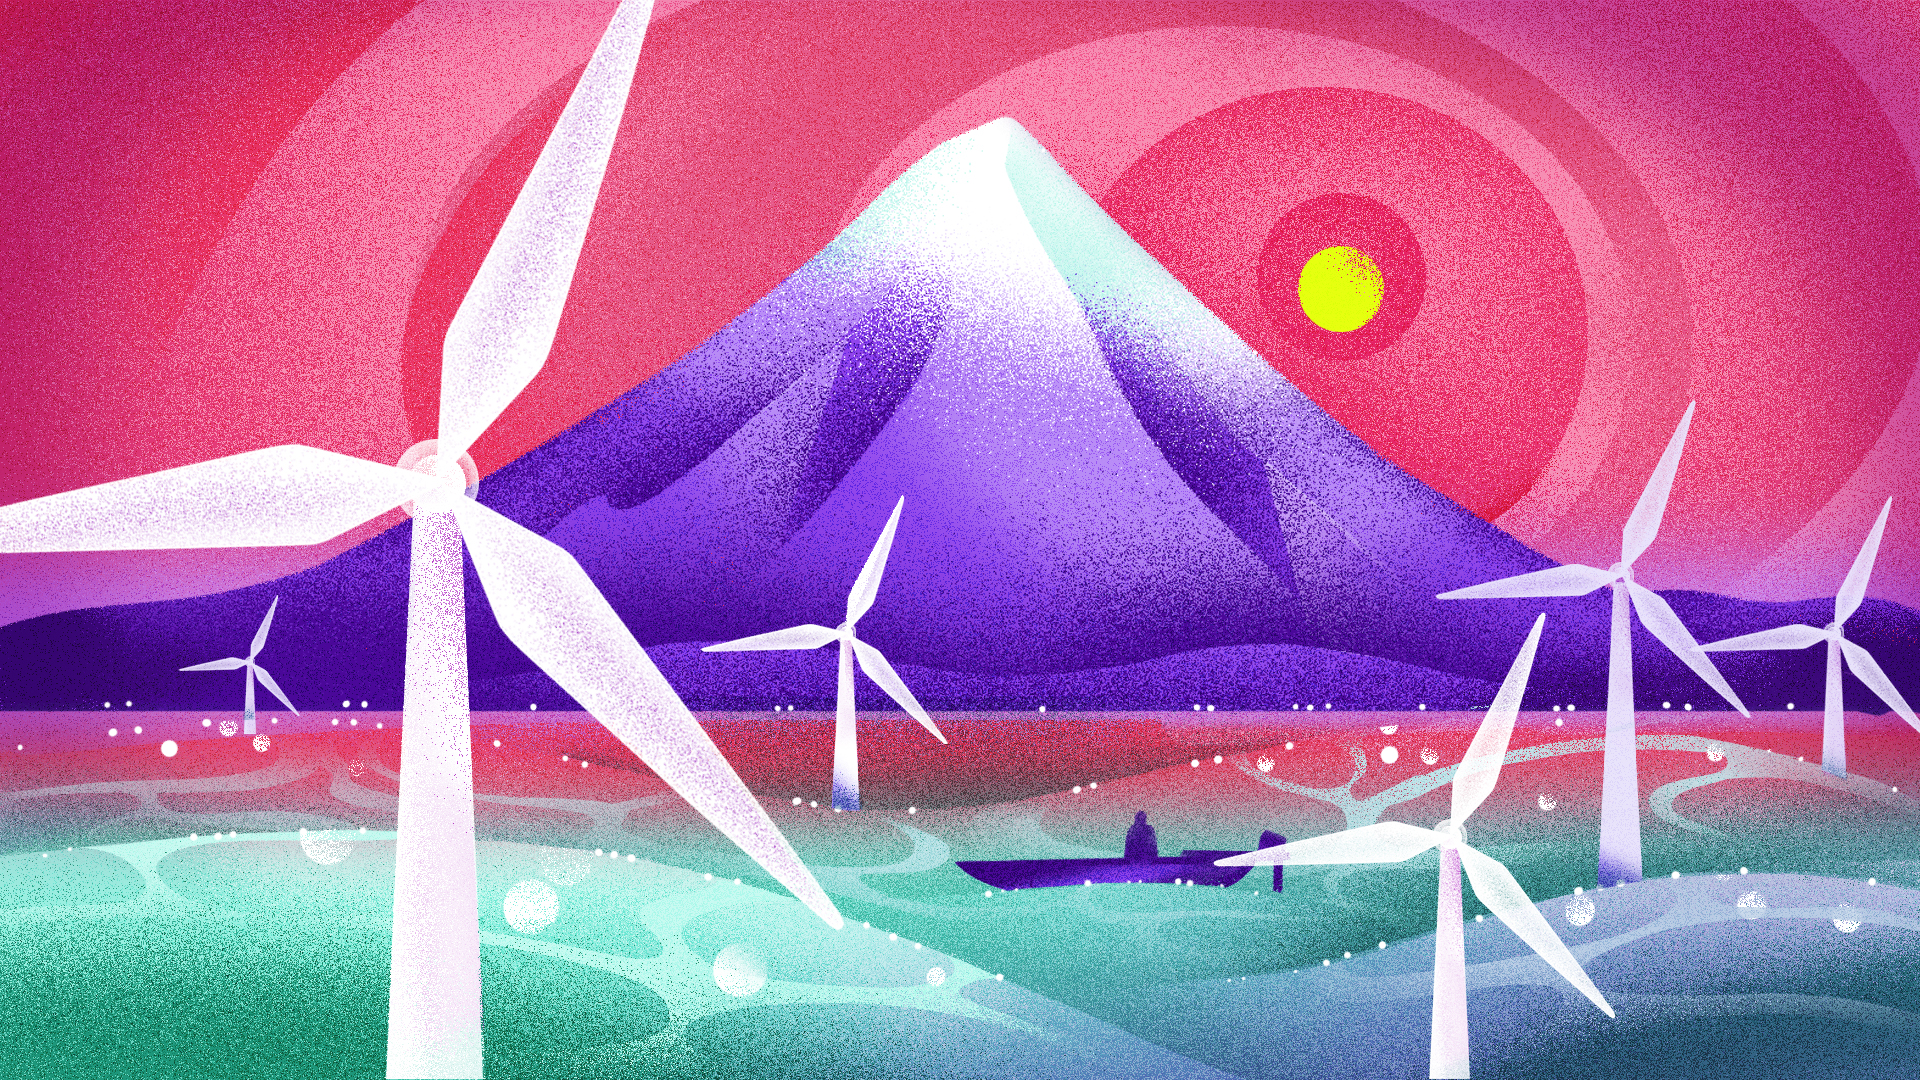 Illustration shows wind turbines in turbulent seas, with a mountain in the background